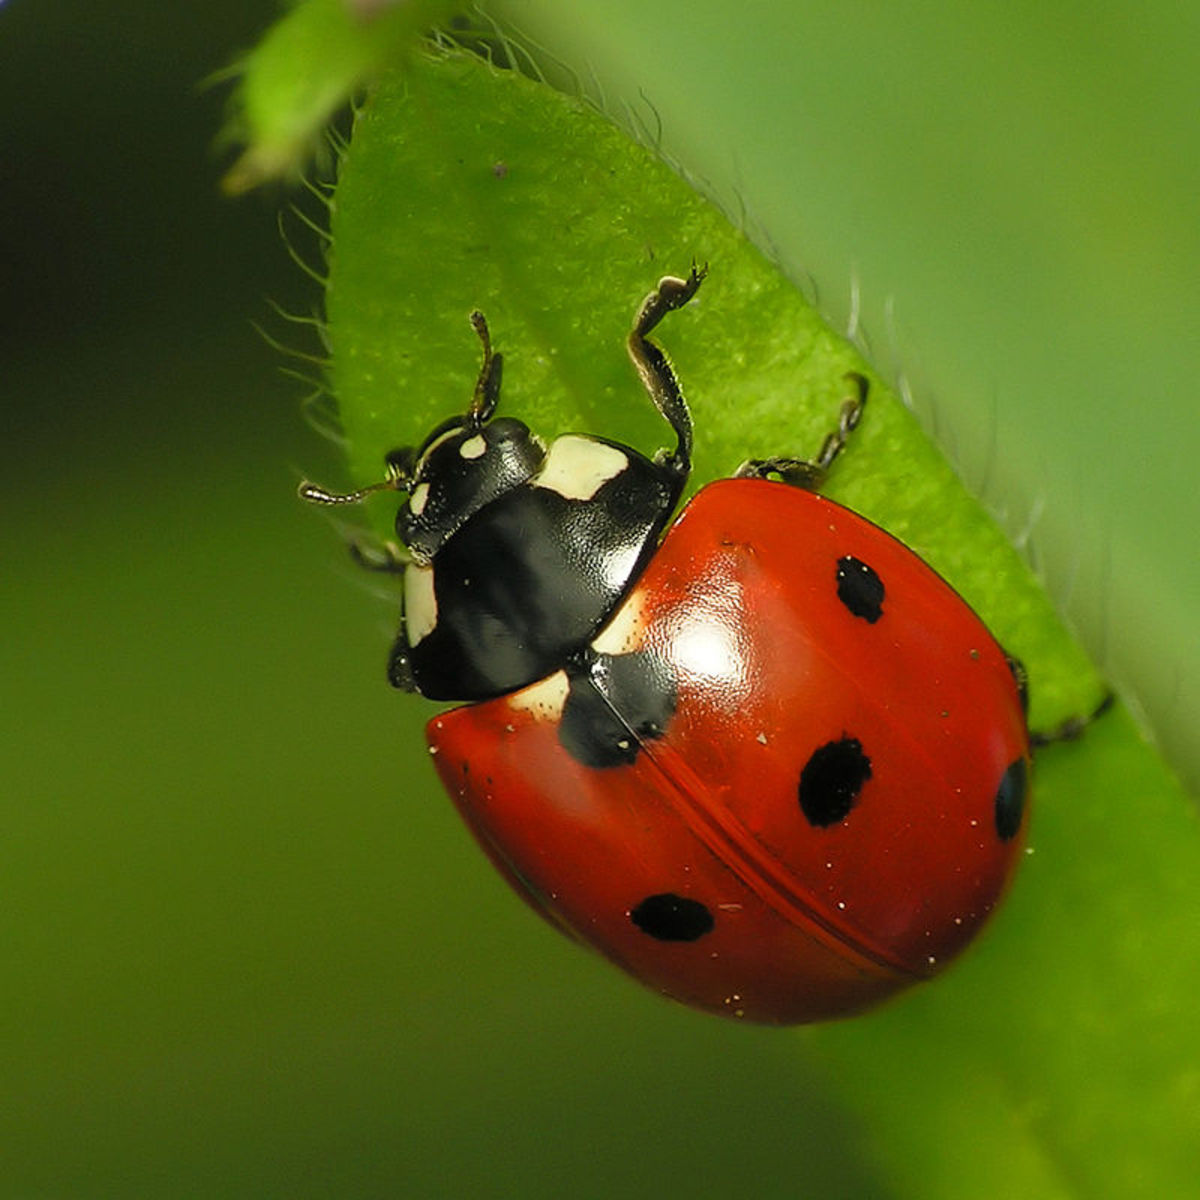 How to Attract Ladybugs to Your Garden